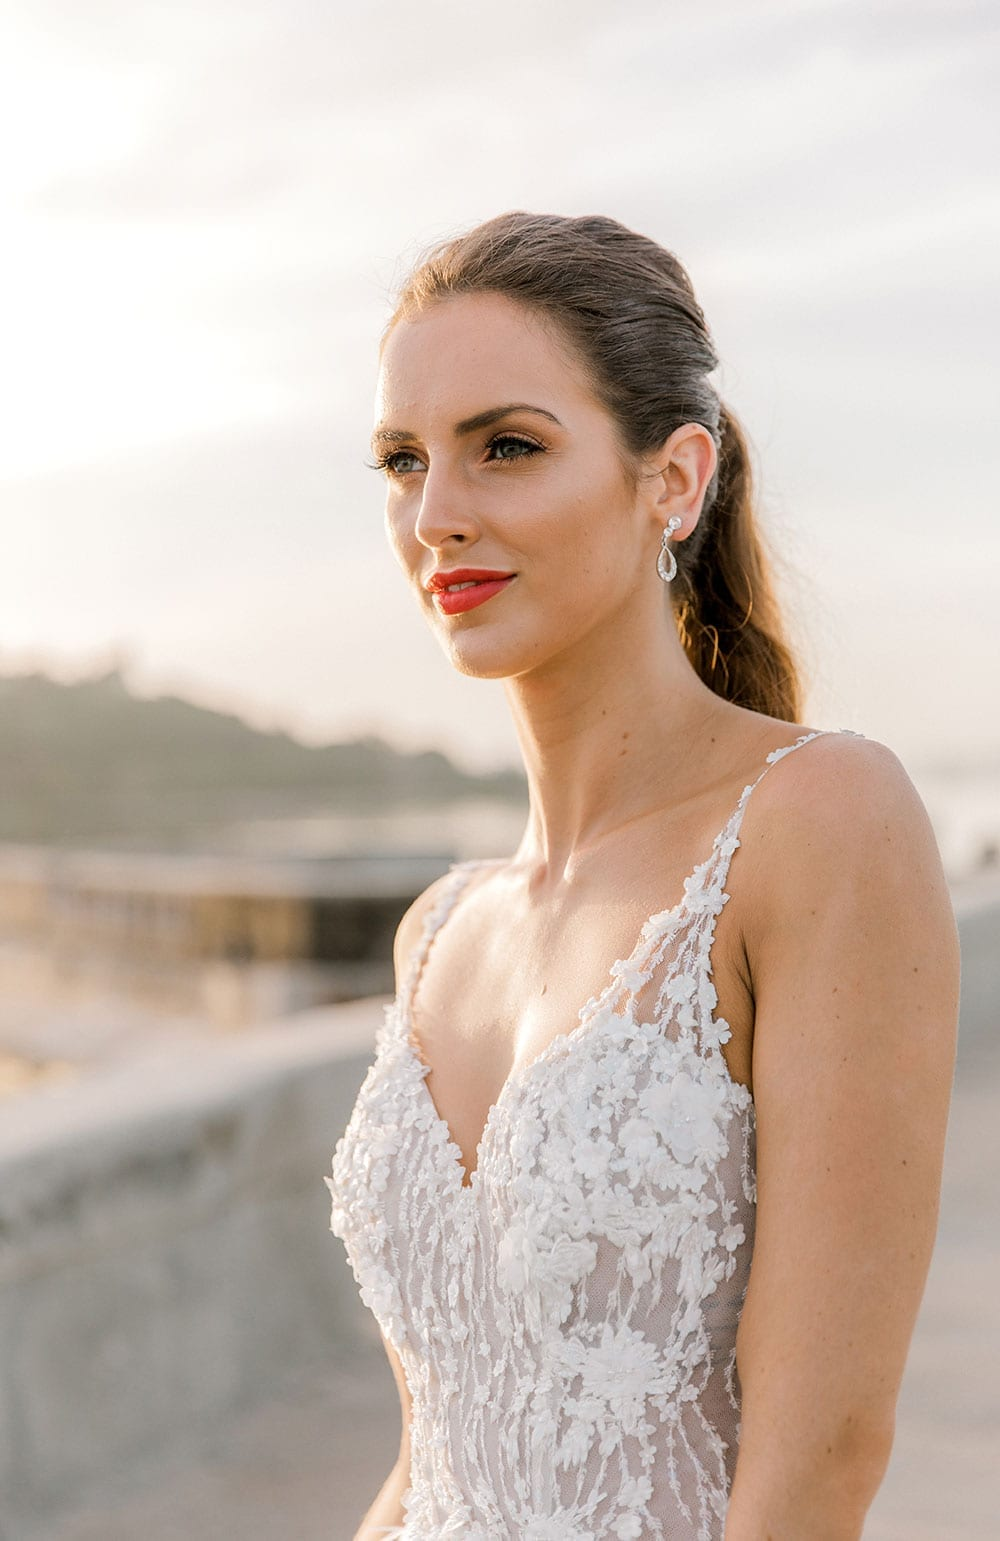 Model wearing Vinka Design Iris Wedding Dress, a Silk Chiffon Wedding Gown posed on a paved walkway in Havana close up